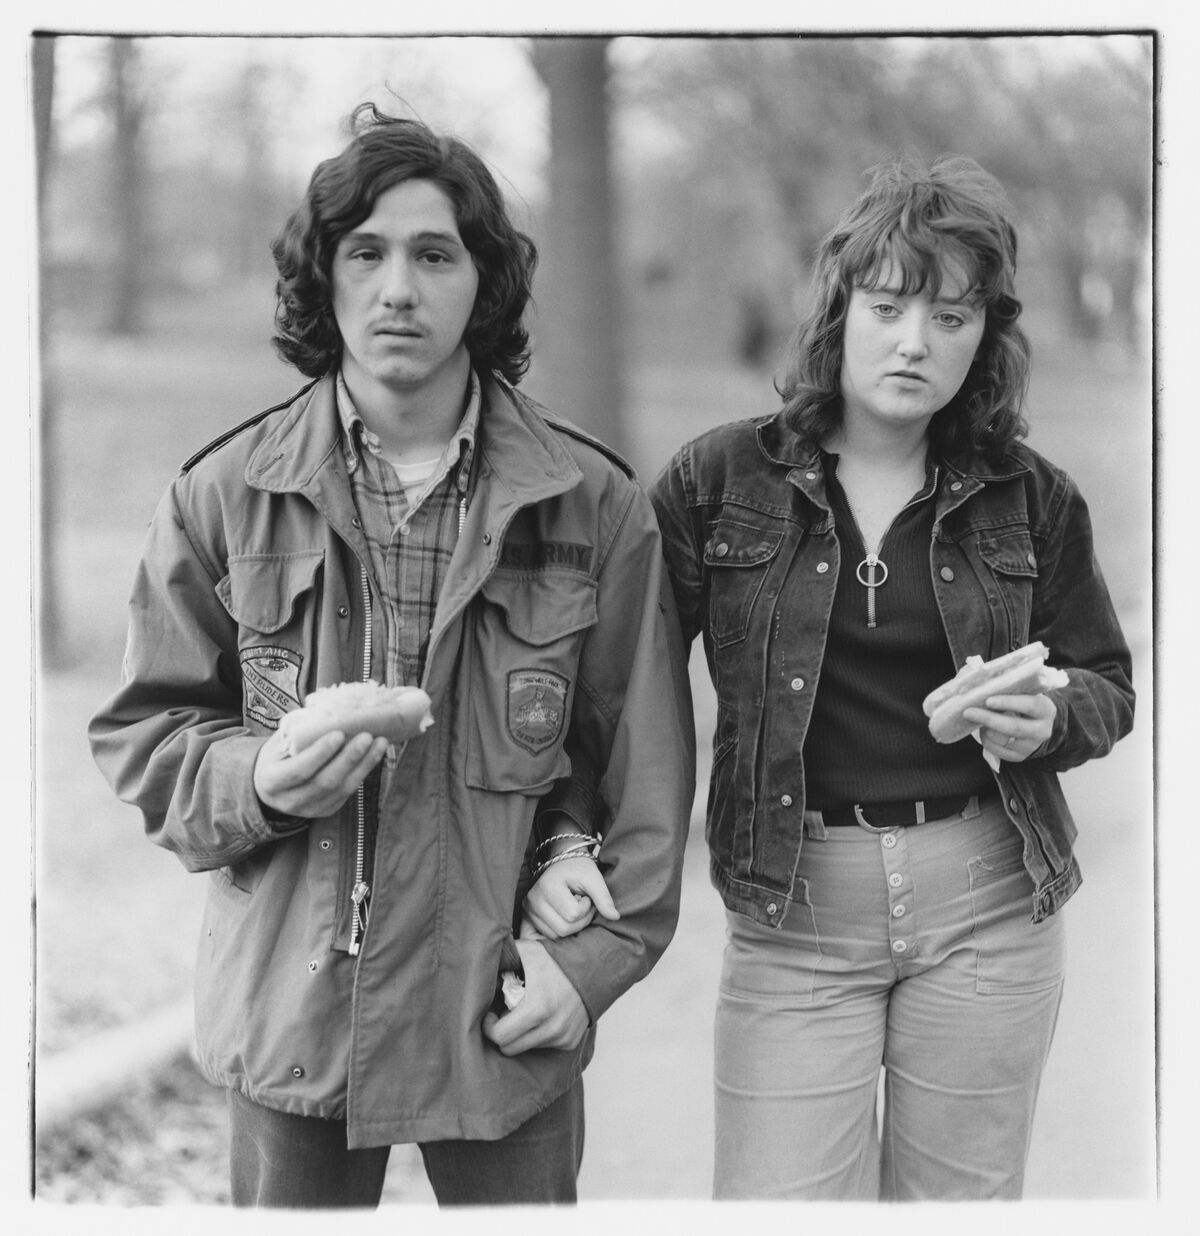 Diane Arbus, A young man and his girlfriend with hot dogs in the park, N.Y.C., 1971. © The Estate of Diane Arbus